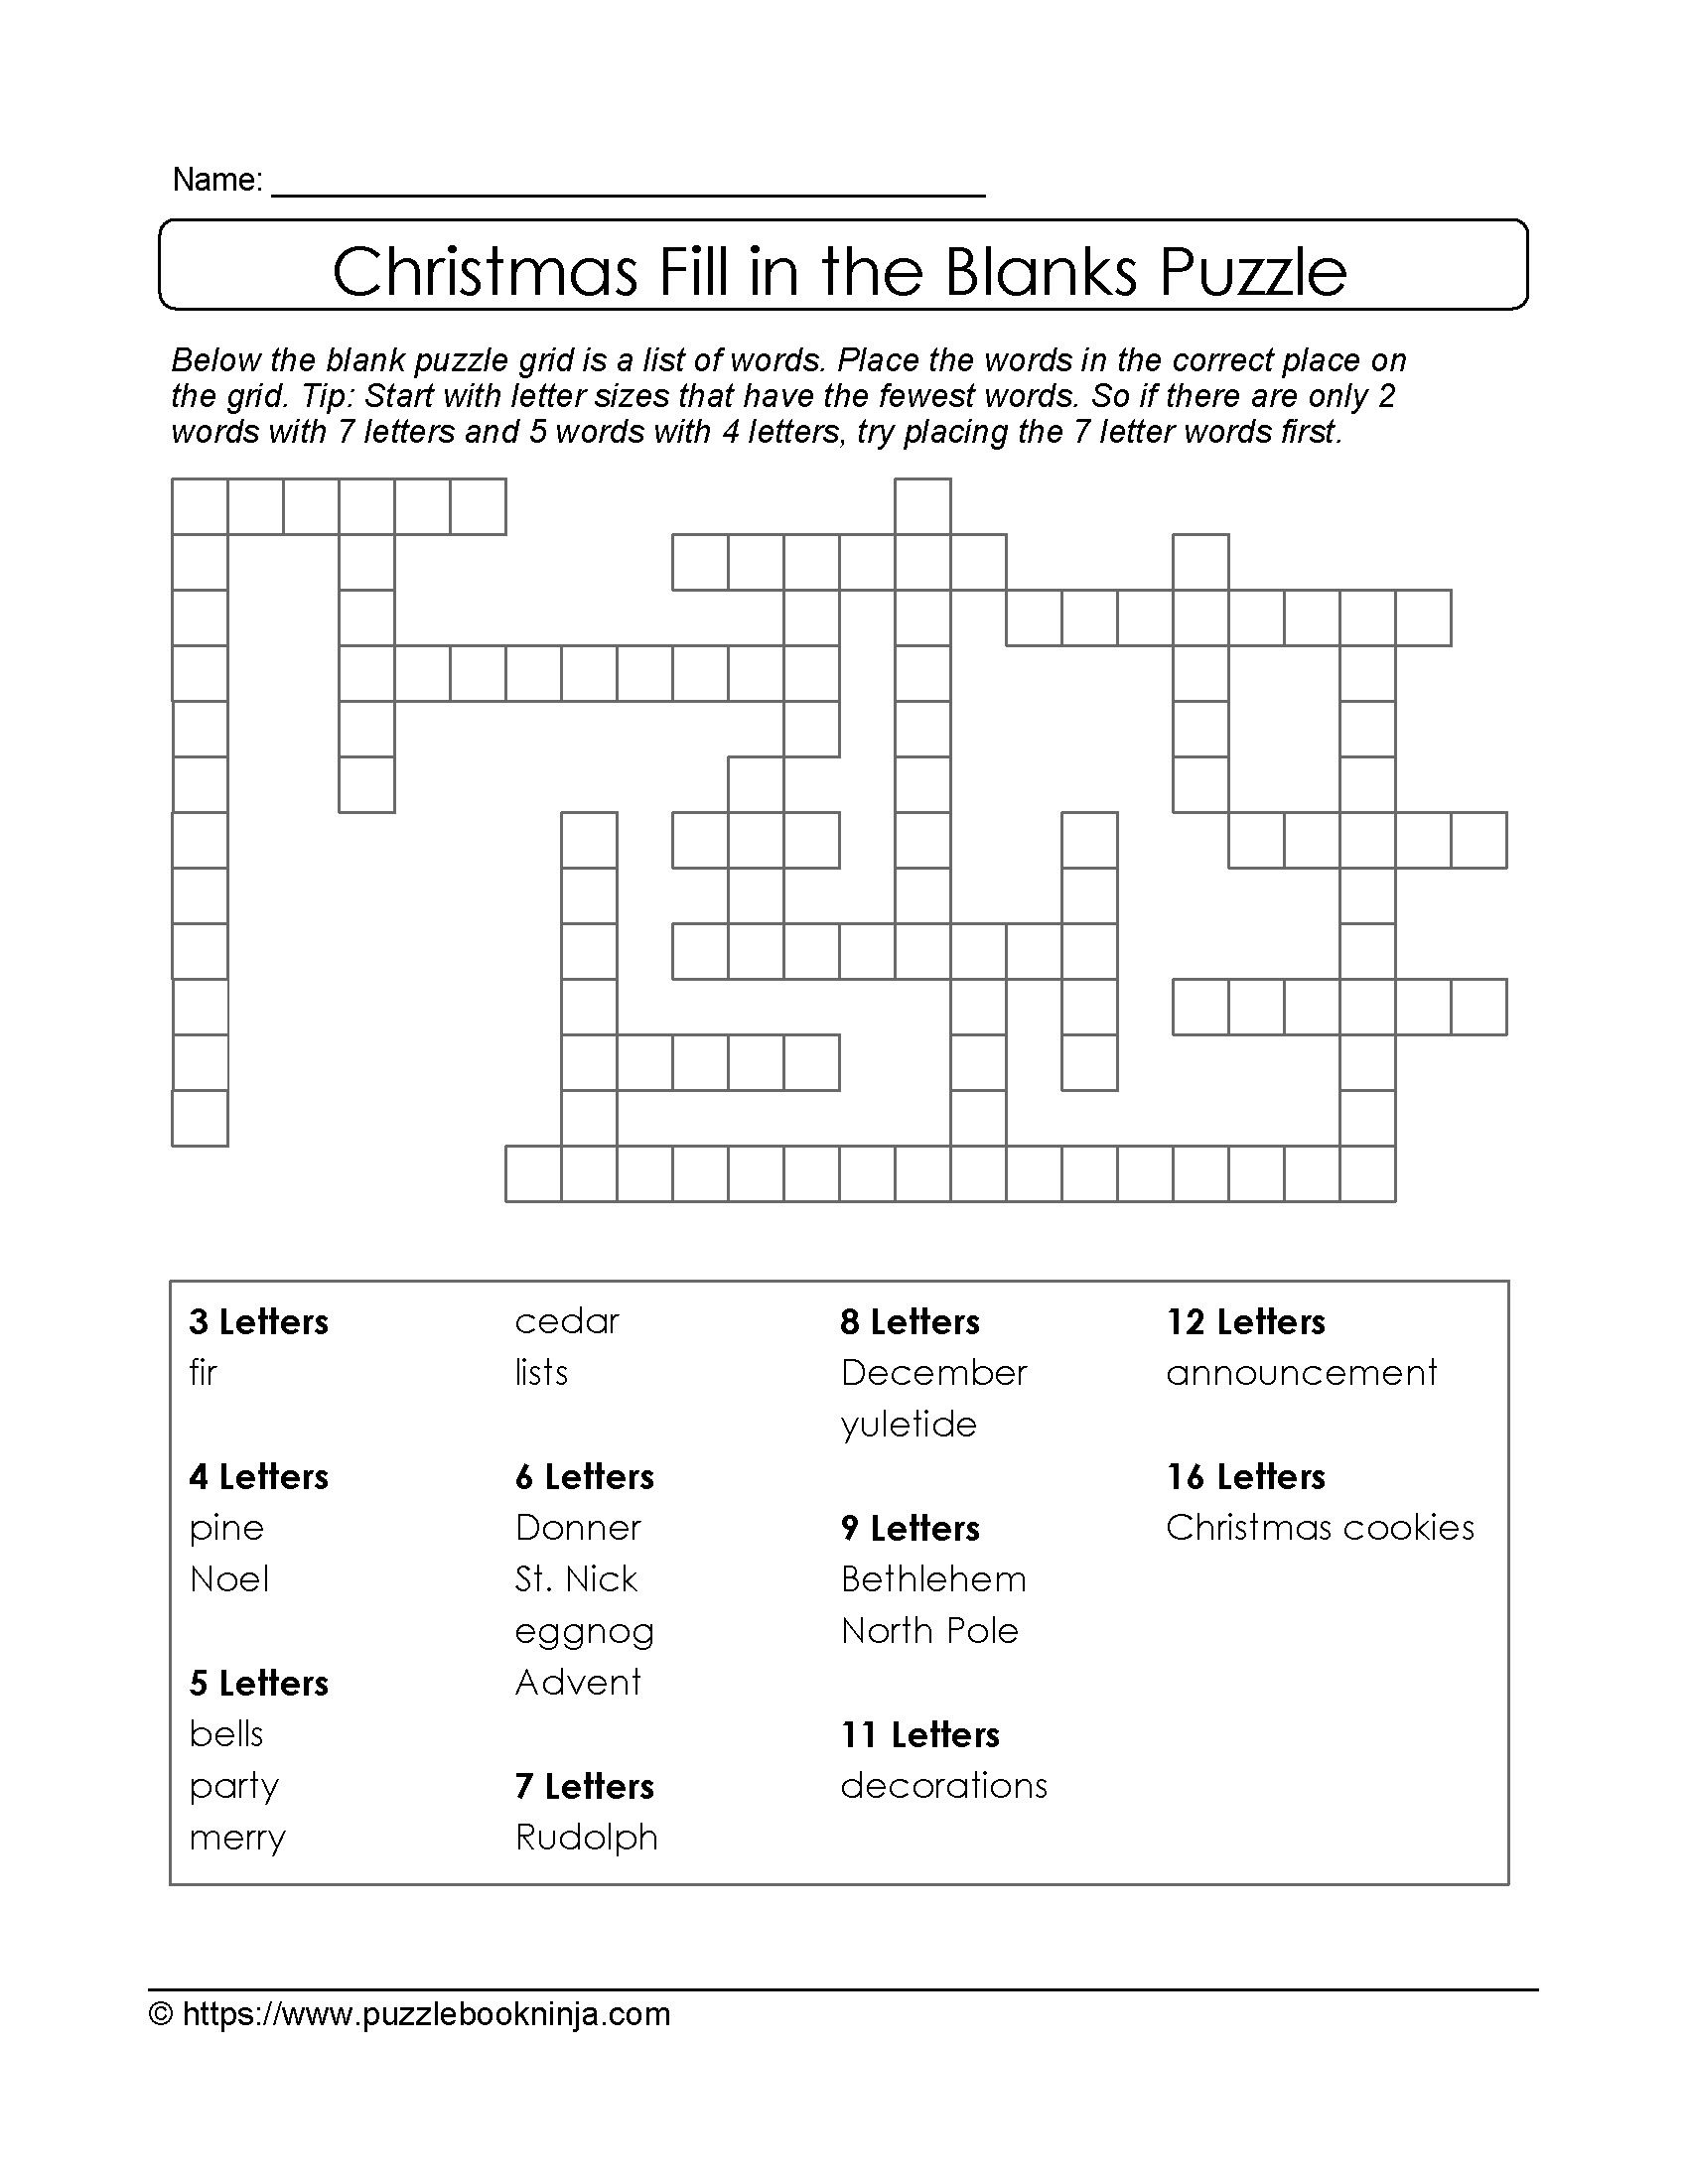 Christmas Printable Puzzle. Free Fill In The Blanks. | Christmas - Printable Blank Crossword Puzzles